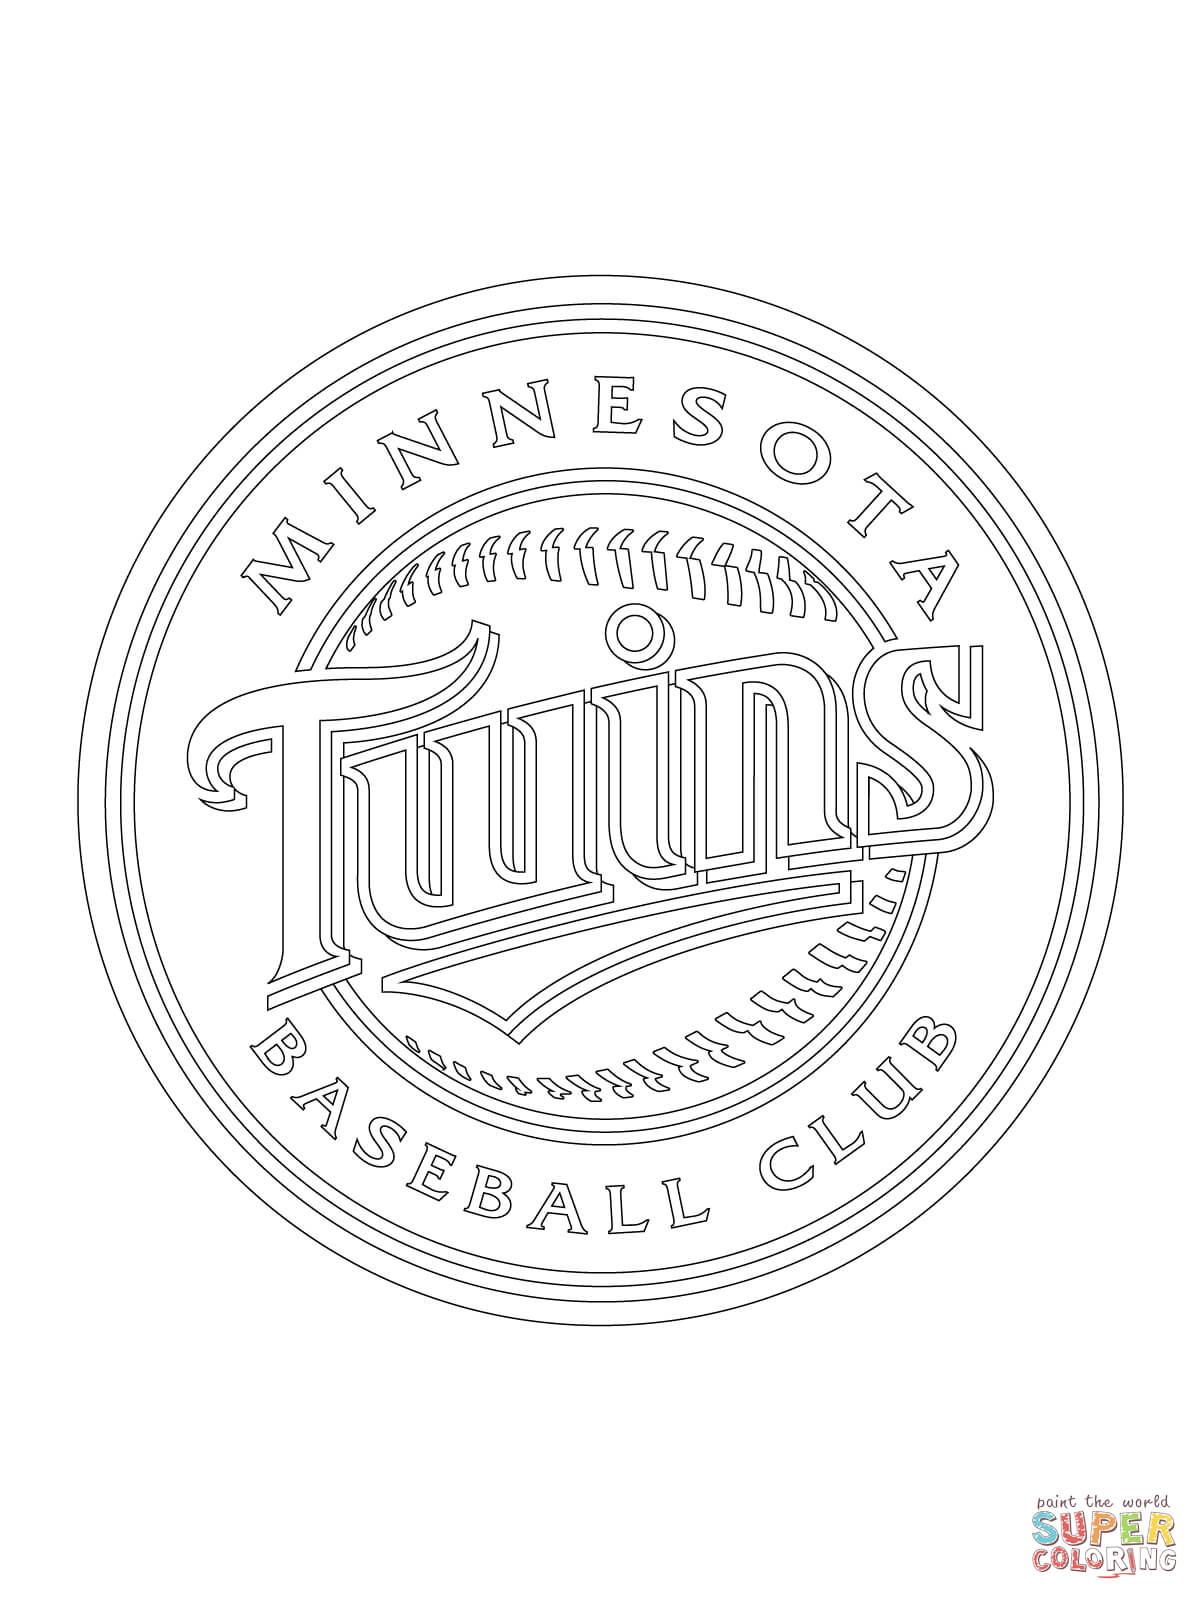 Minnesota Twins Logo Coloring Page